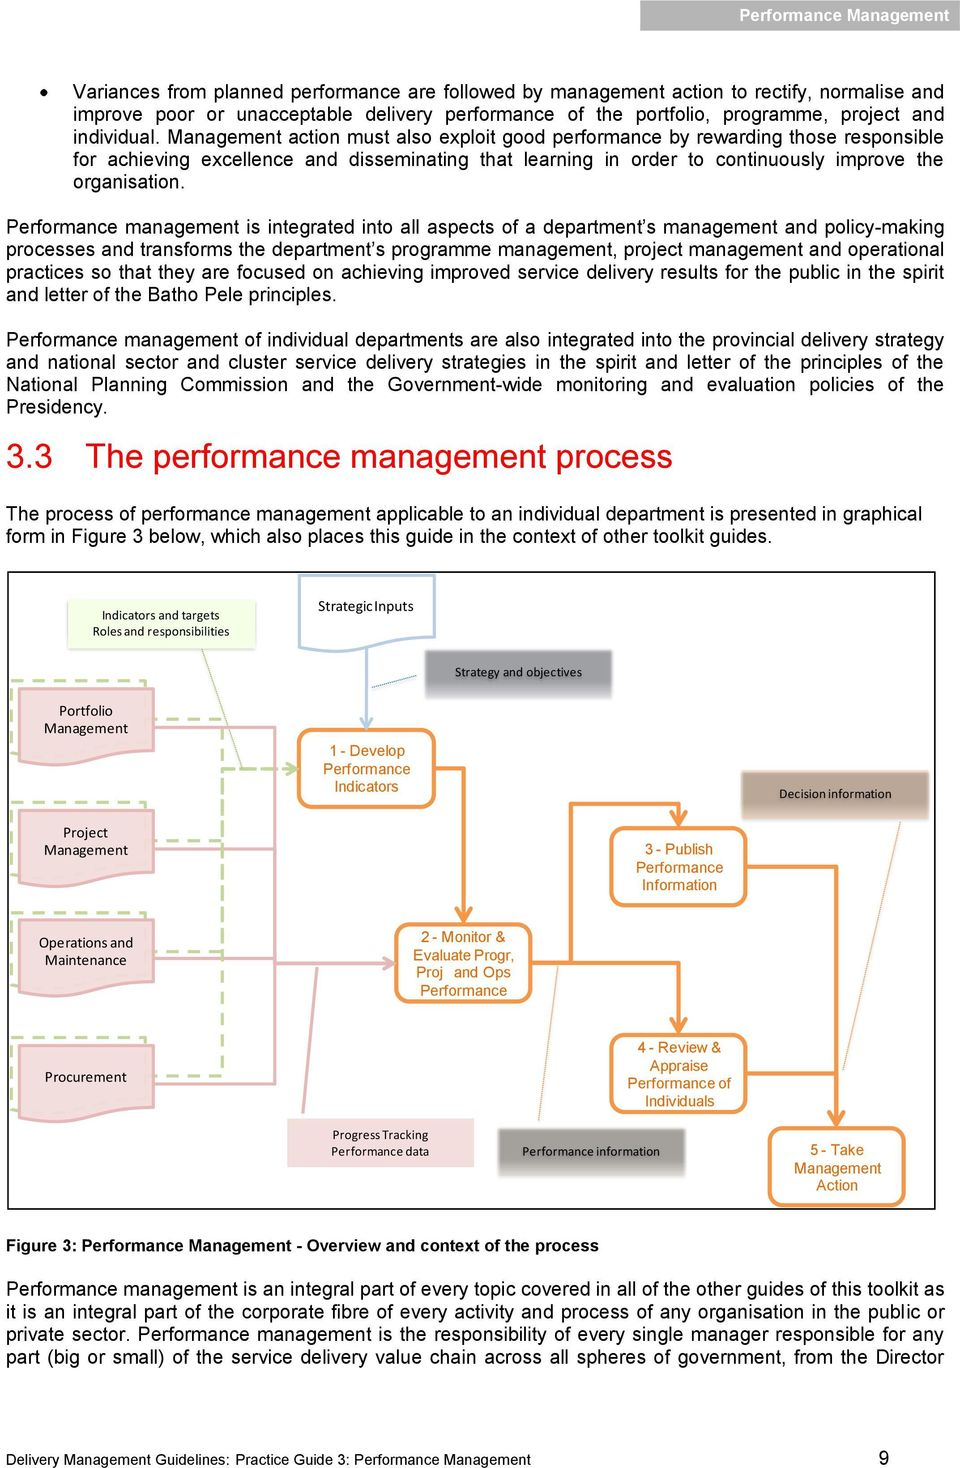 Performance management is integrated into all aspects of a department s management and policy-making processes and transforms the department s programme management, project management and operational